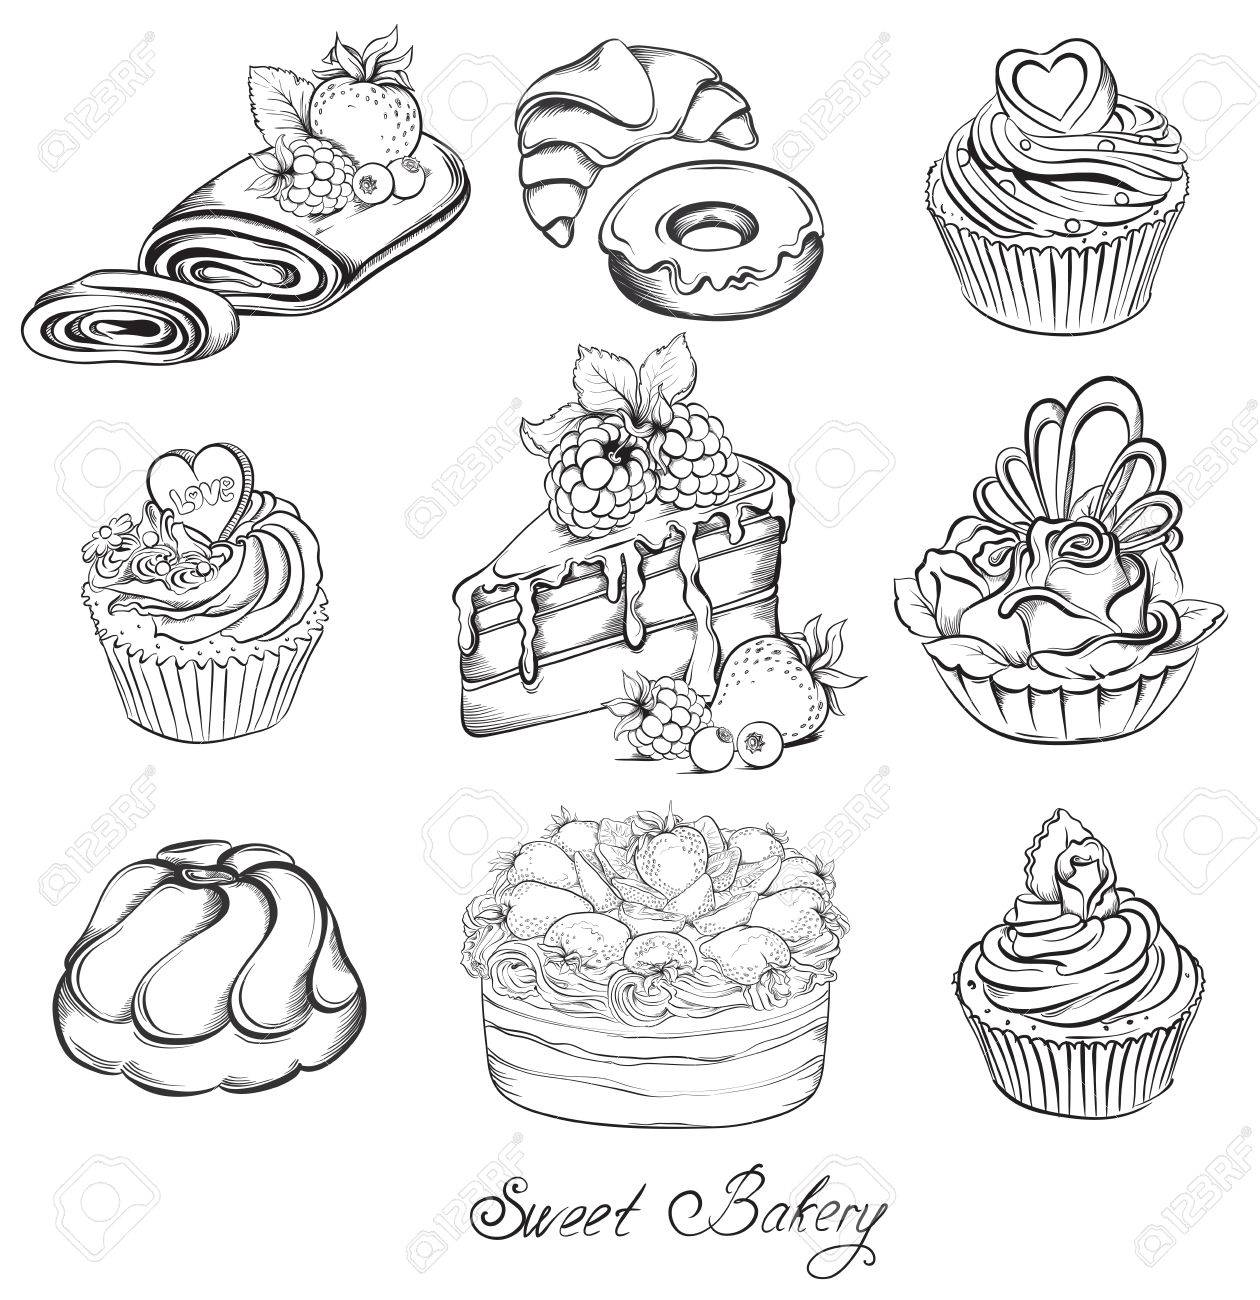 Collection Hand drawn of various beautiful Cakes and Cupcakes. Sketch Vector illustration. - 37313177